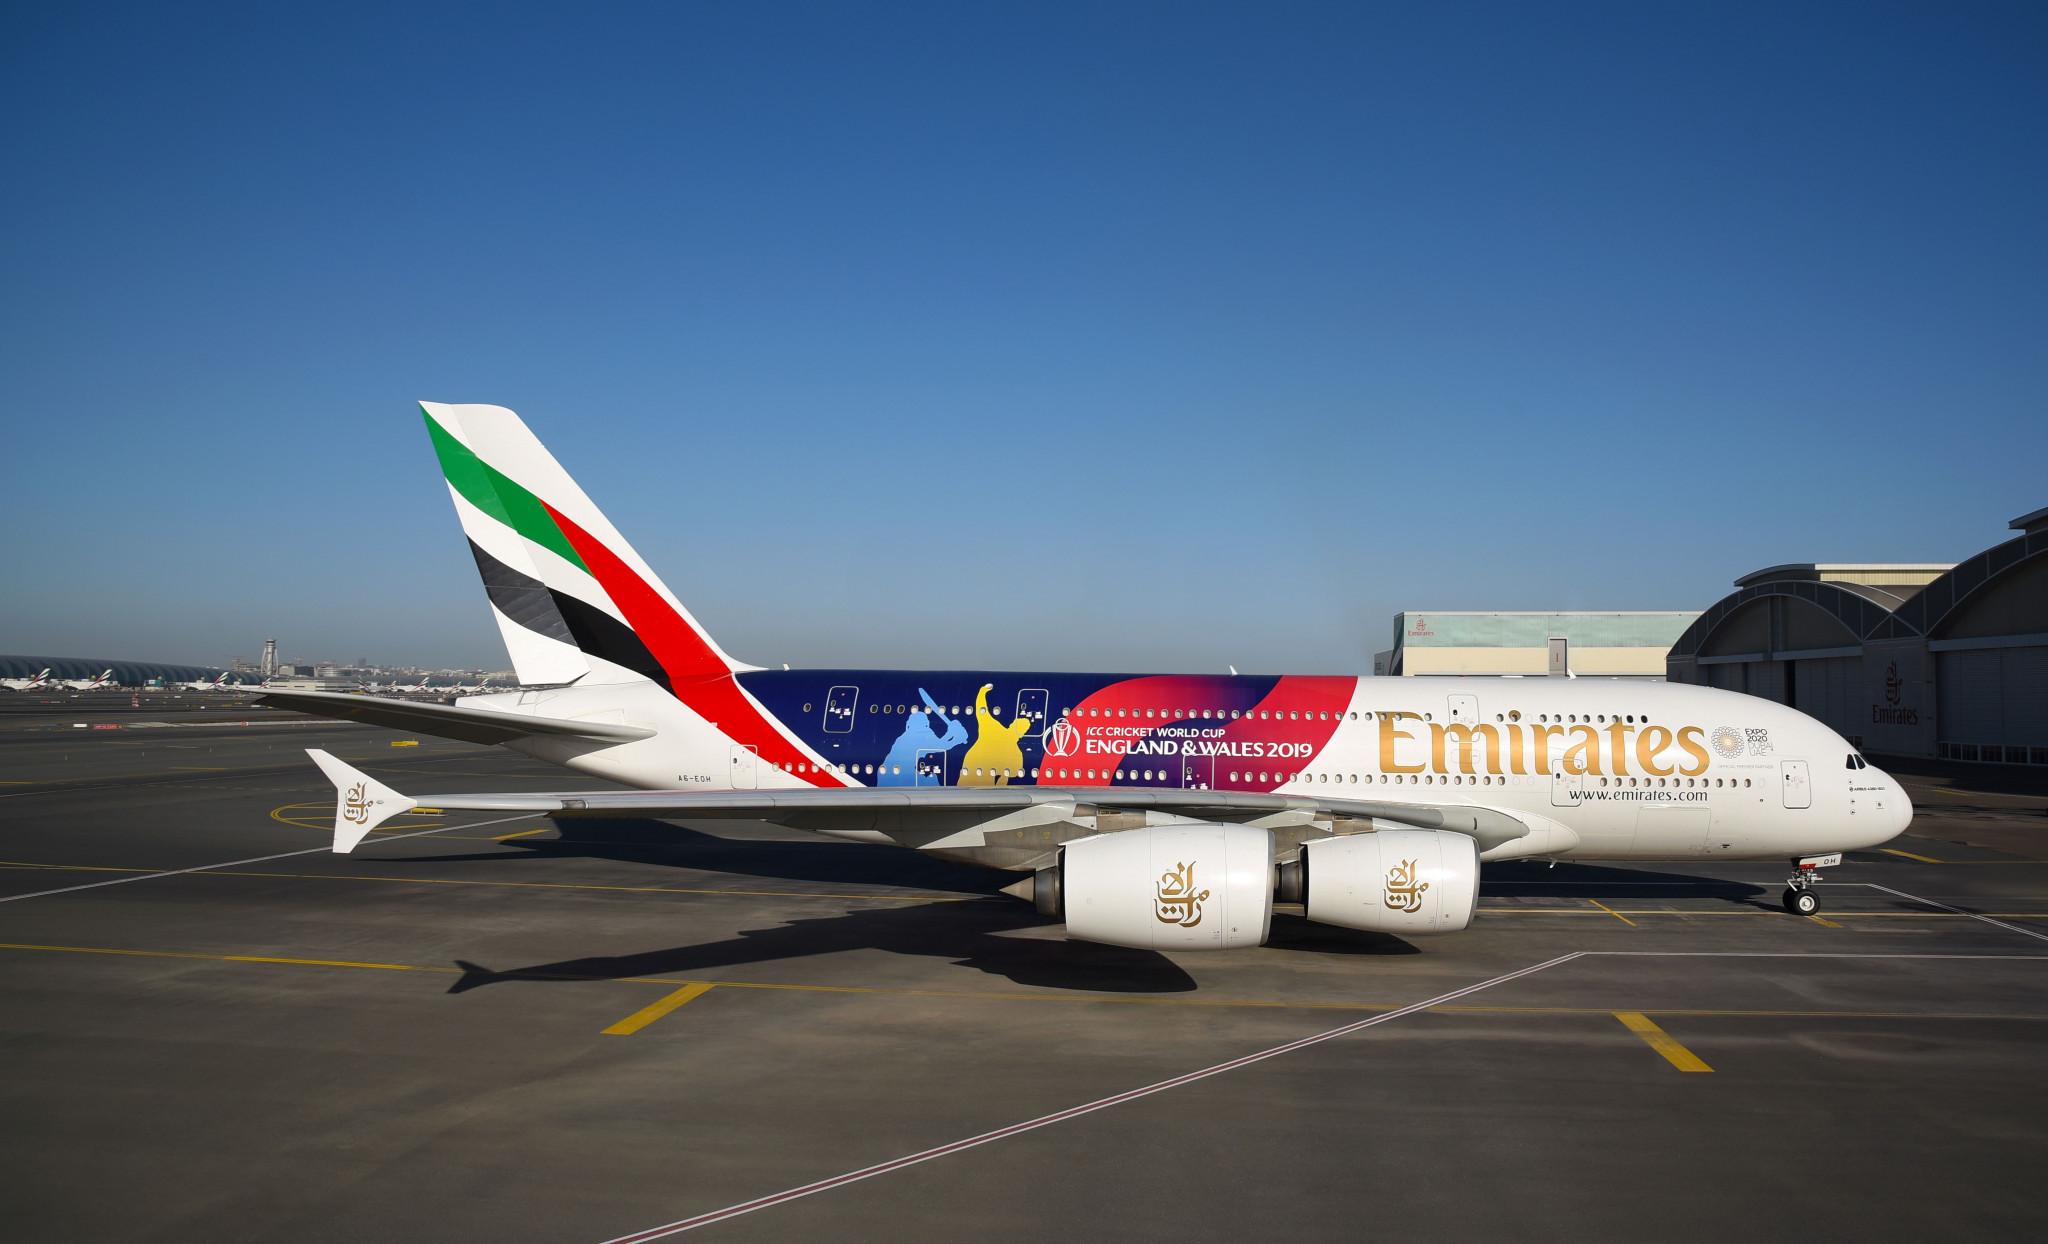 Emirates has revealed a special livery for its A380 airliner in the build-up to the 2019 Men's Cricket World Cup ©ICC